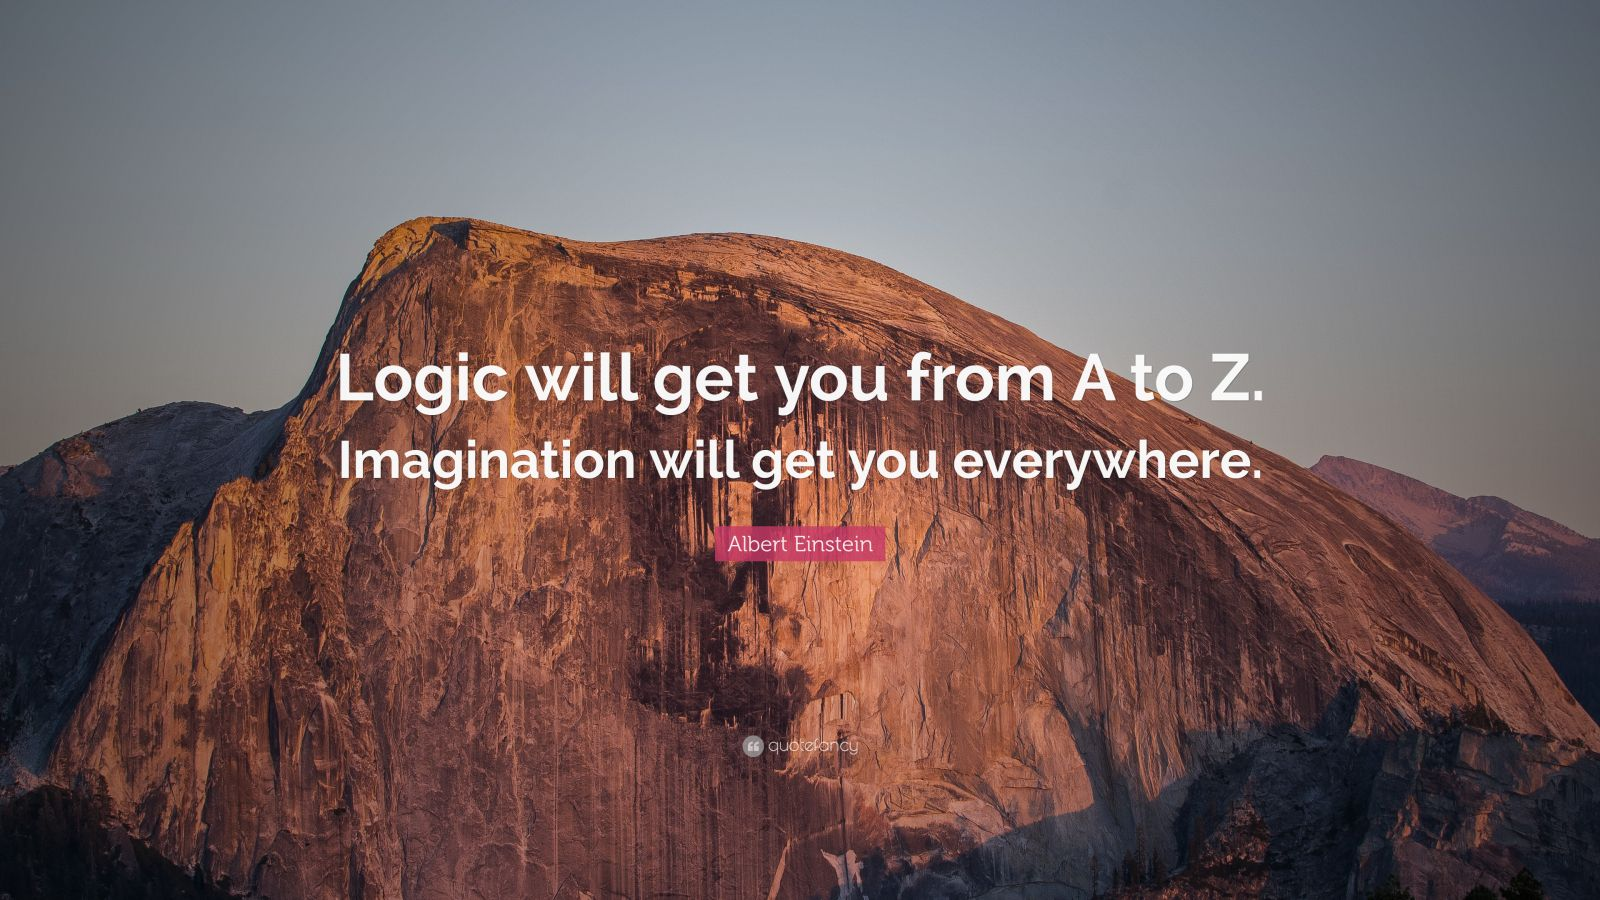 Albert Einstein Wallpaper Quotes Albert Einstein Quote Logic Will Get You From A To Z